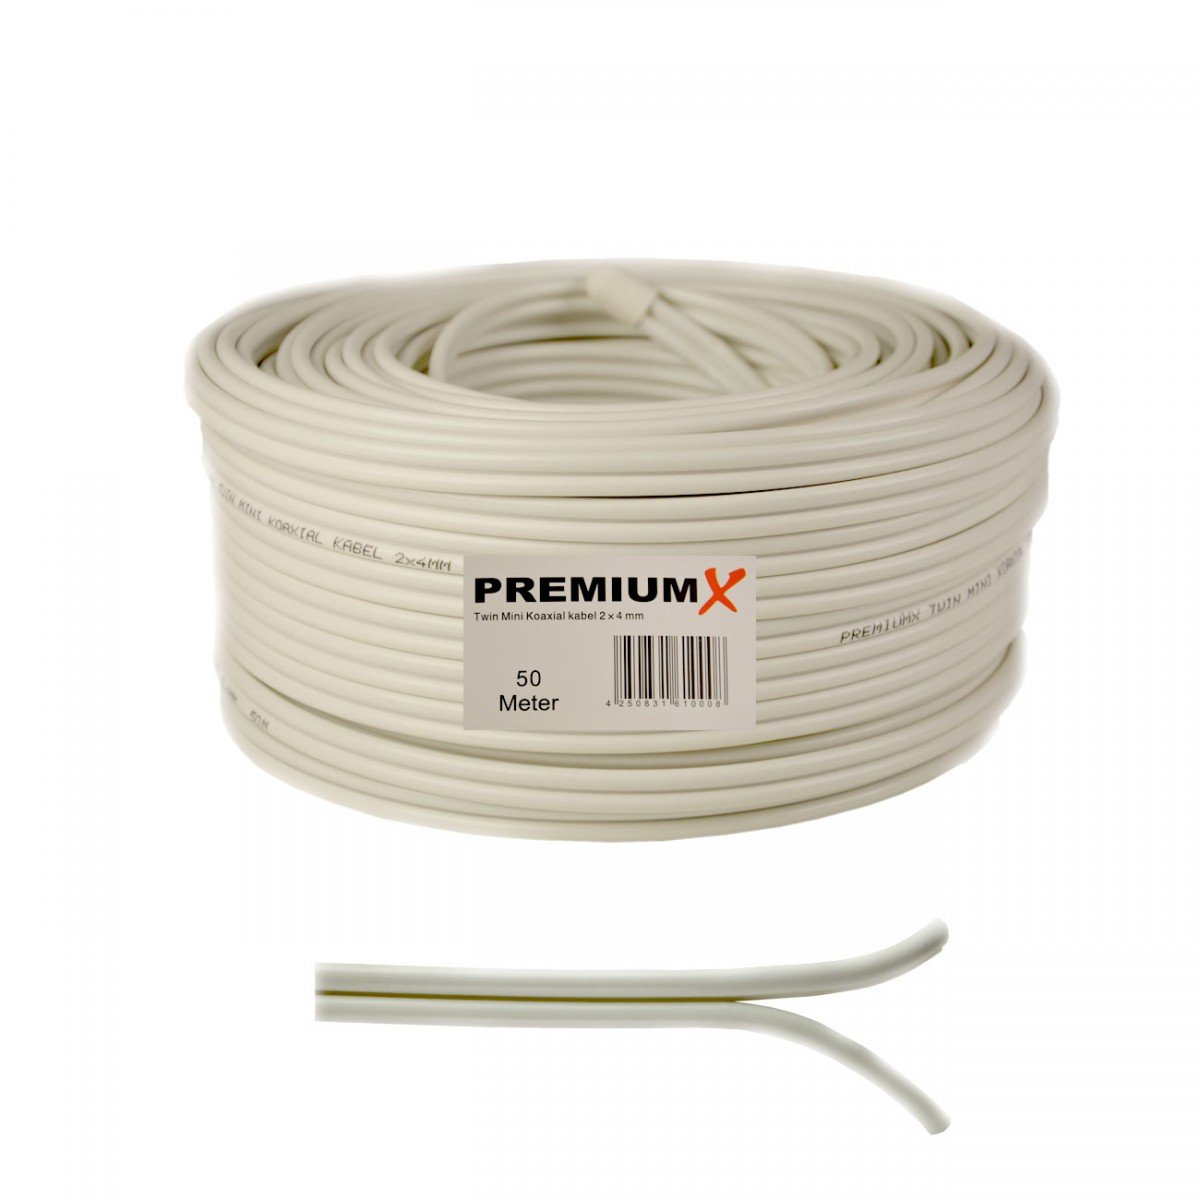 Cable coaxial satelital de 50 metros 90dB Twin Mini 2x 4 mm cable de antena blanca FullHD HDTV NUEVO